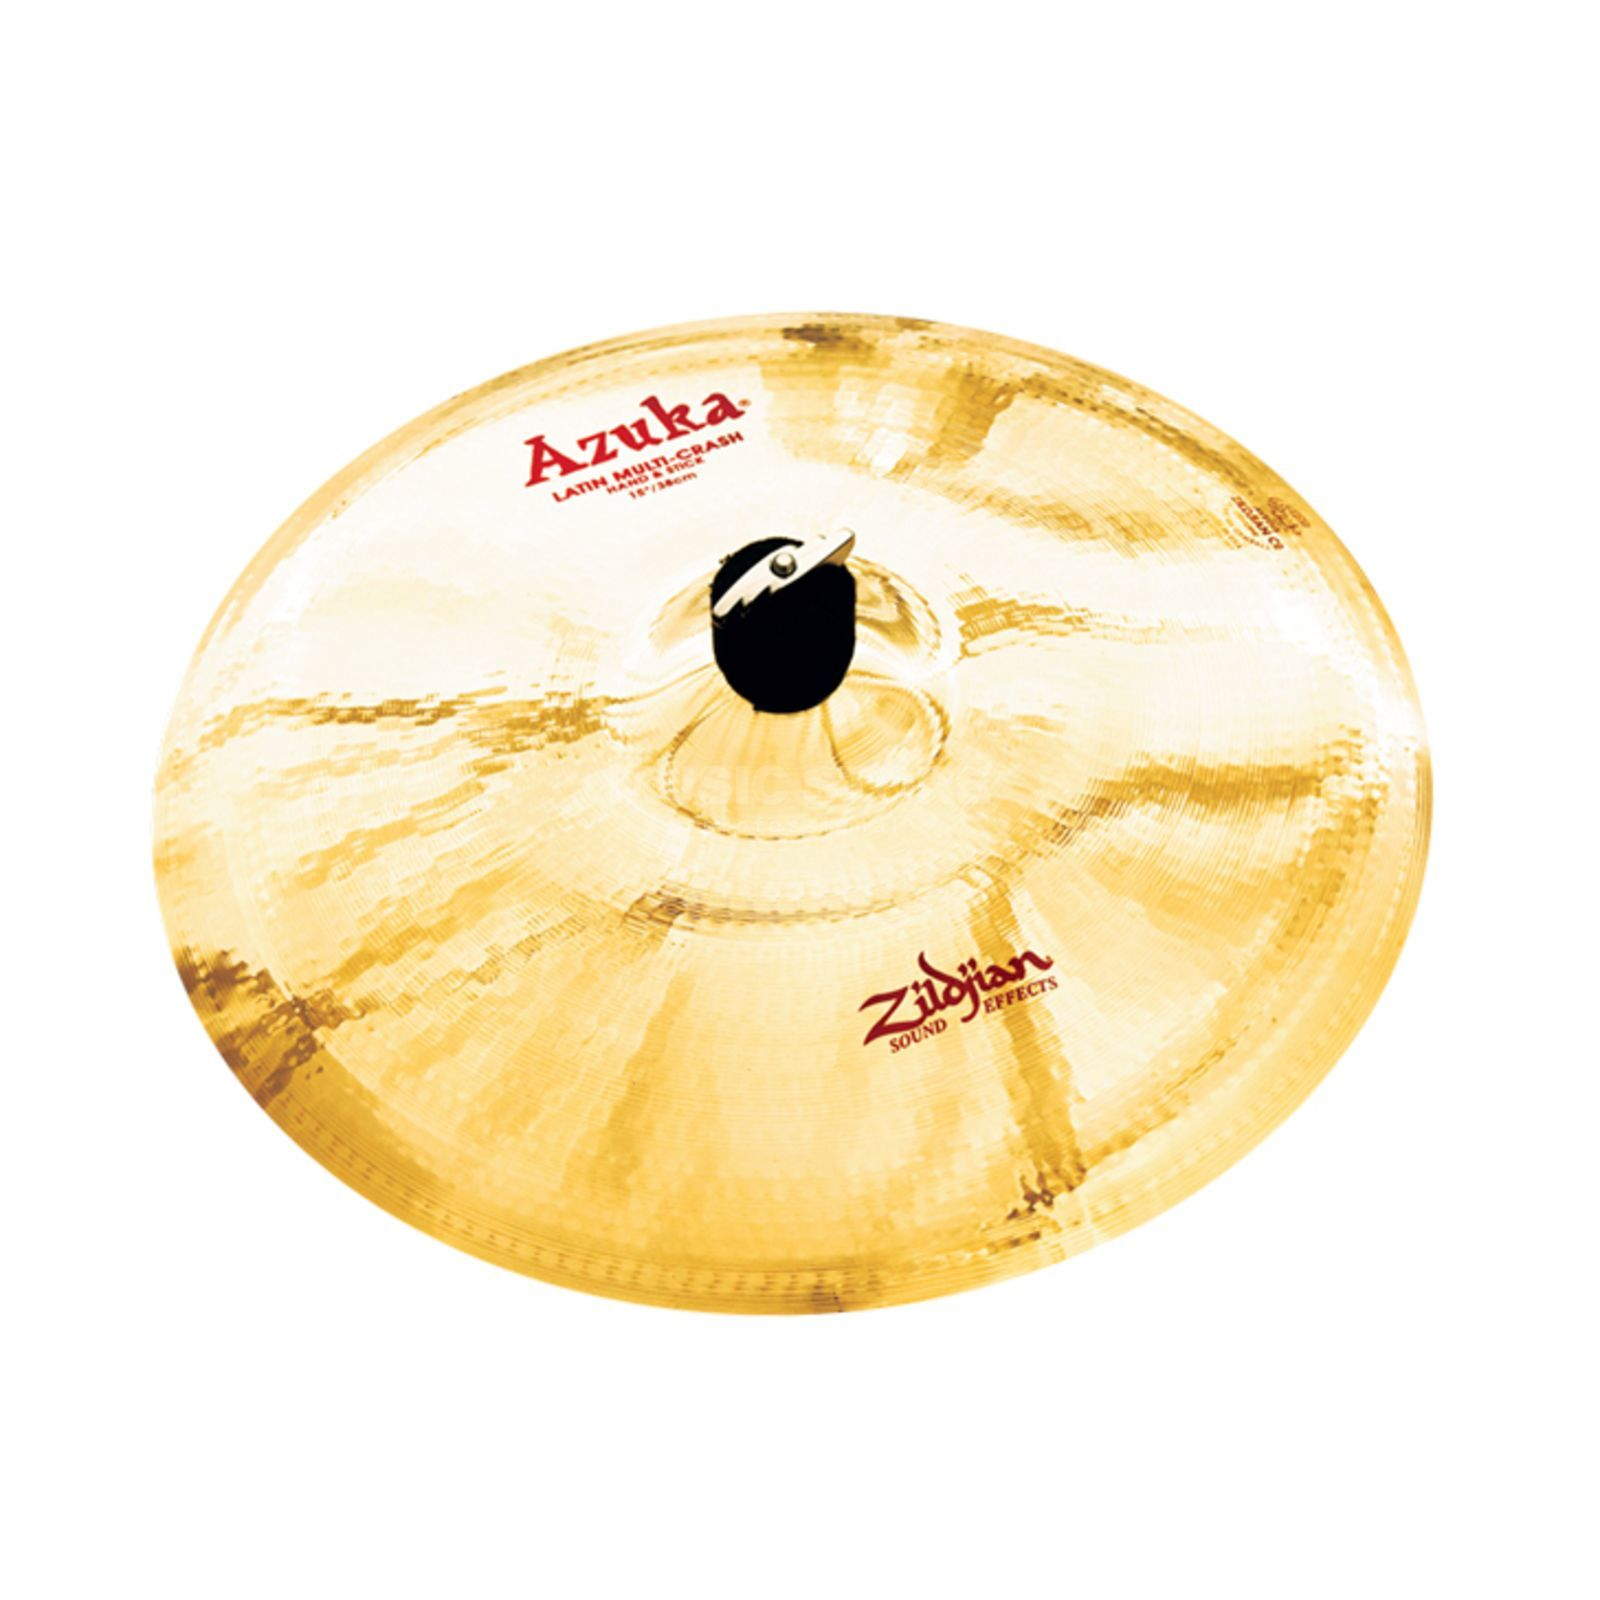 "Zildjian Azuka Latin Multi Crash 15"", Brilliant Finish Productafbeelding"